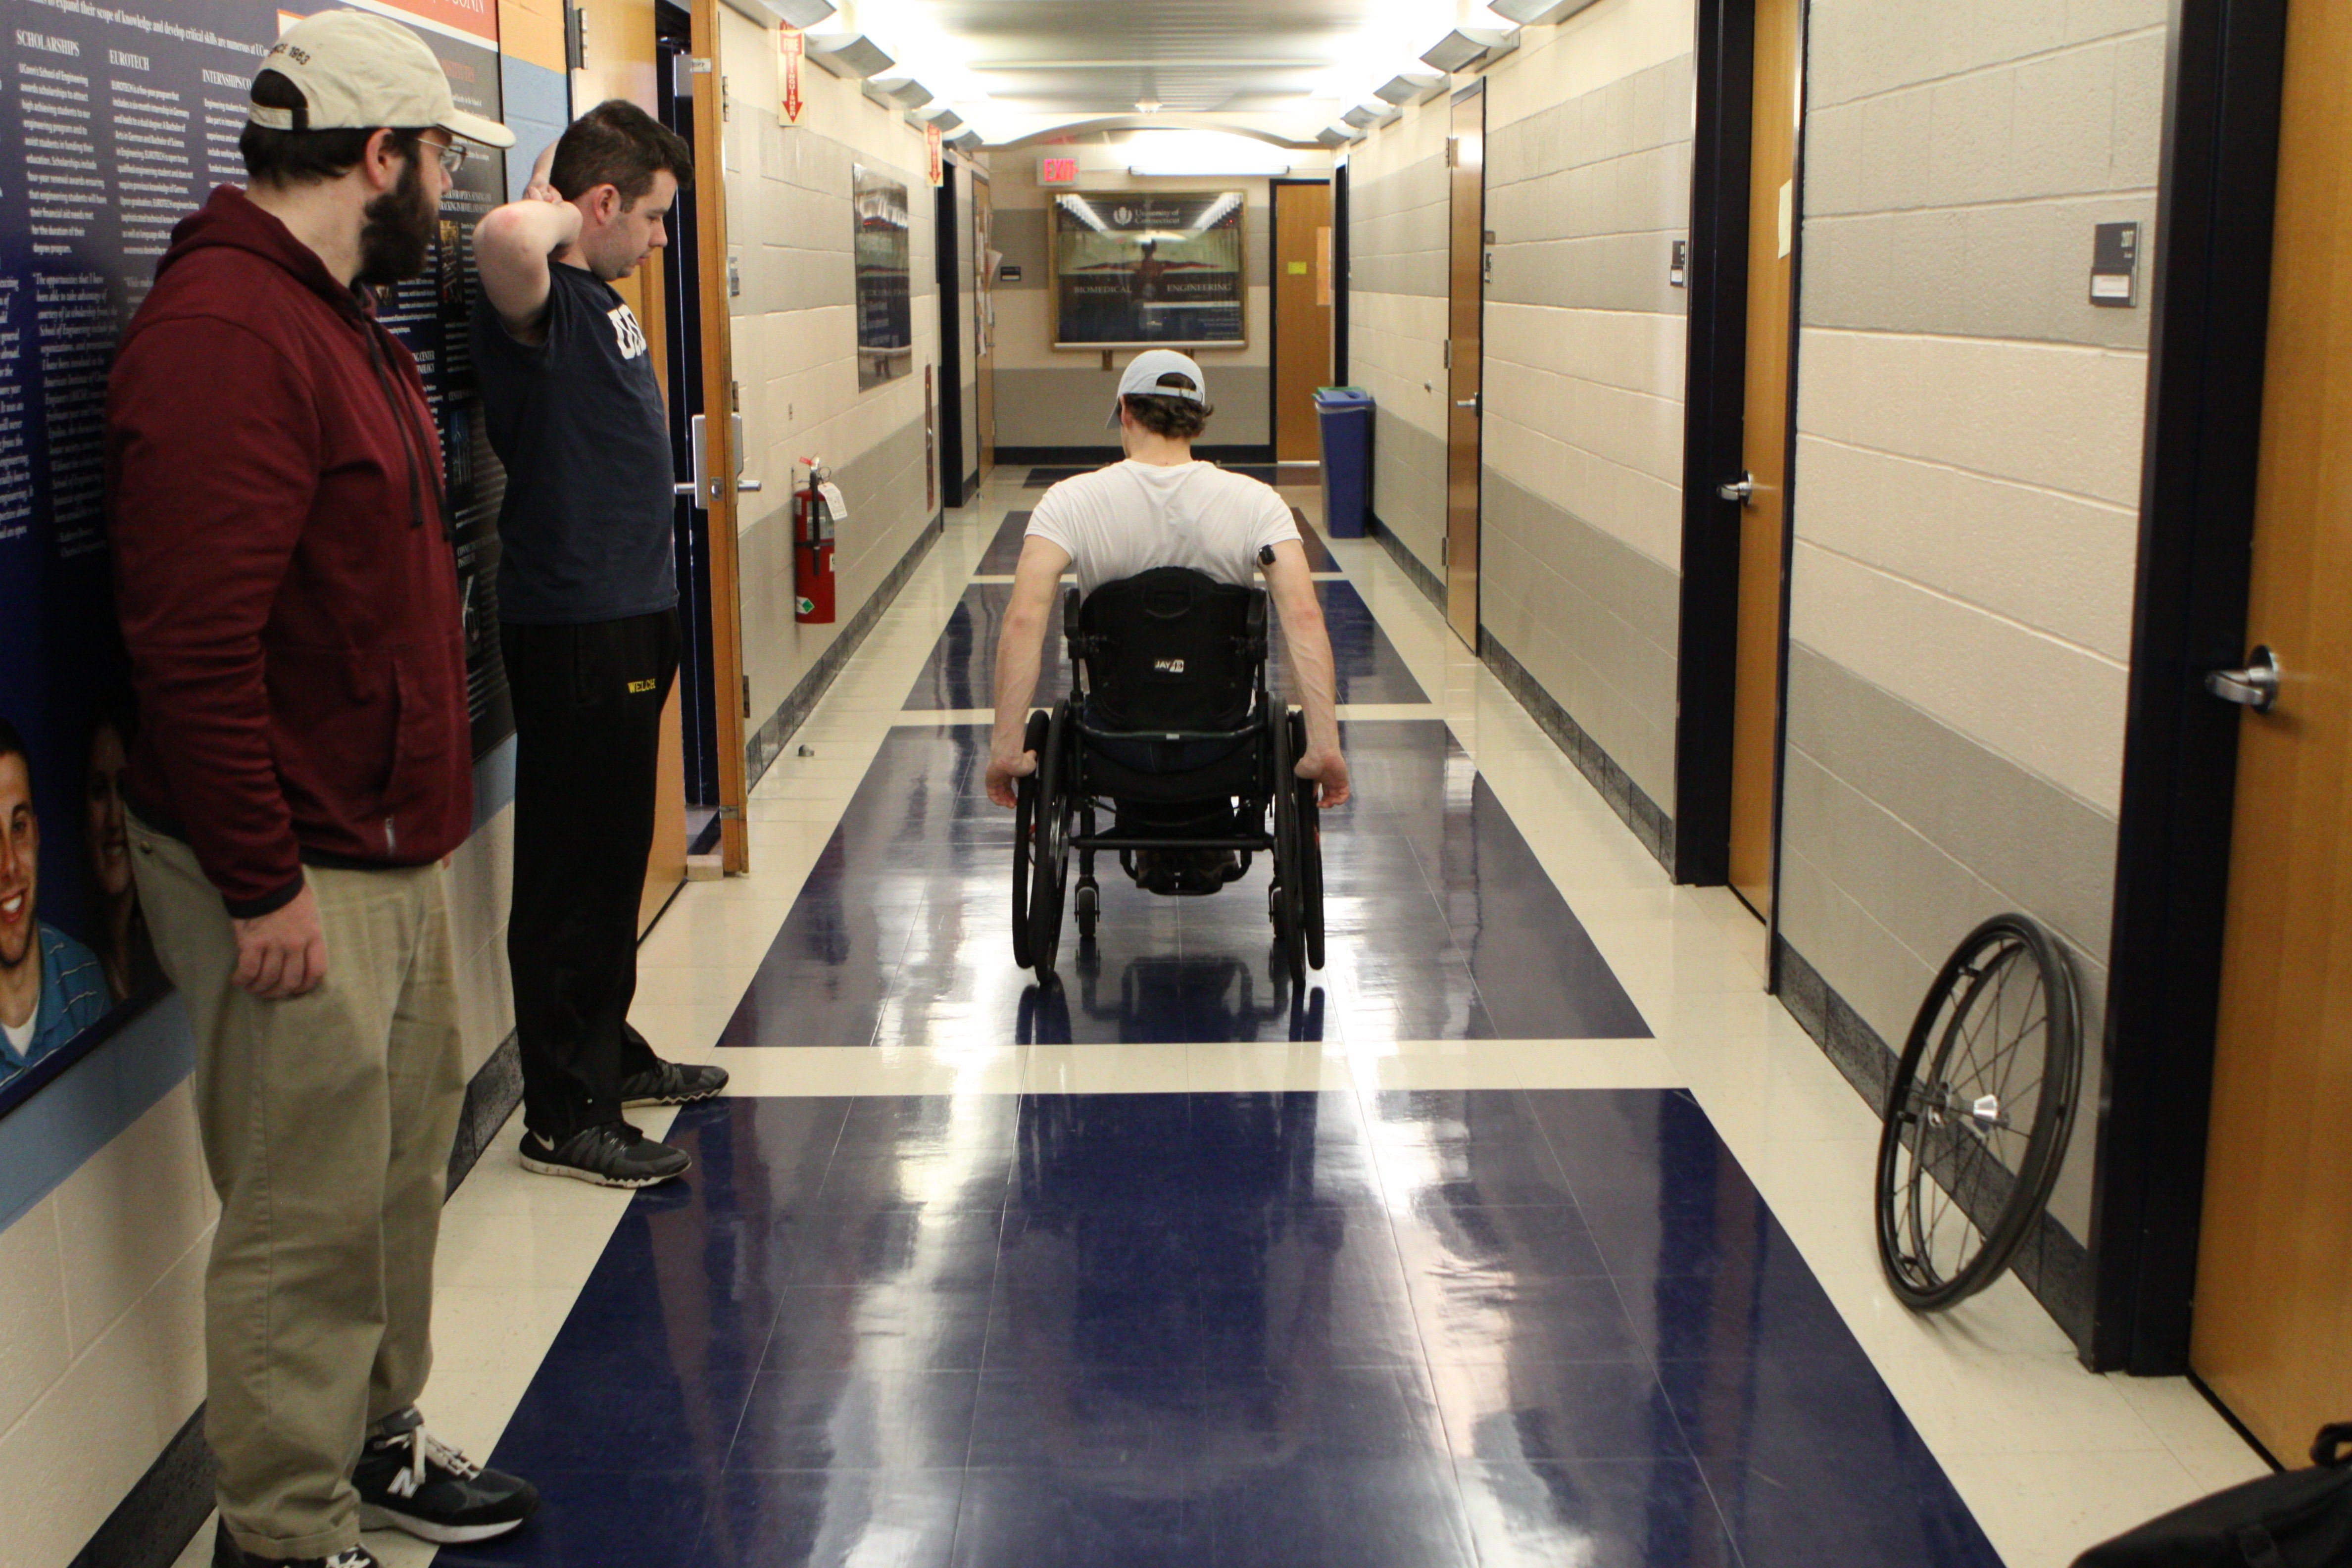 Mitchell DuBuc, center, tests the new wheels in the Arthur B. Bronwell Building at UConn. (Eli Freund/UConn Photo)